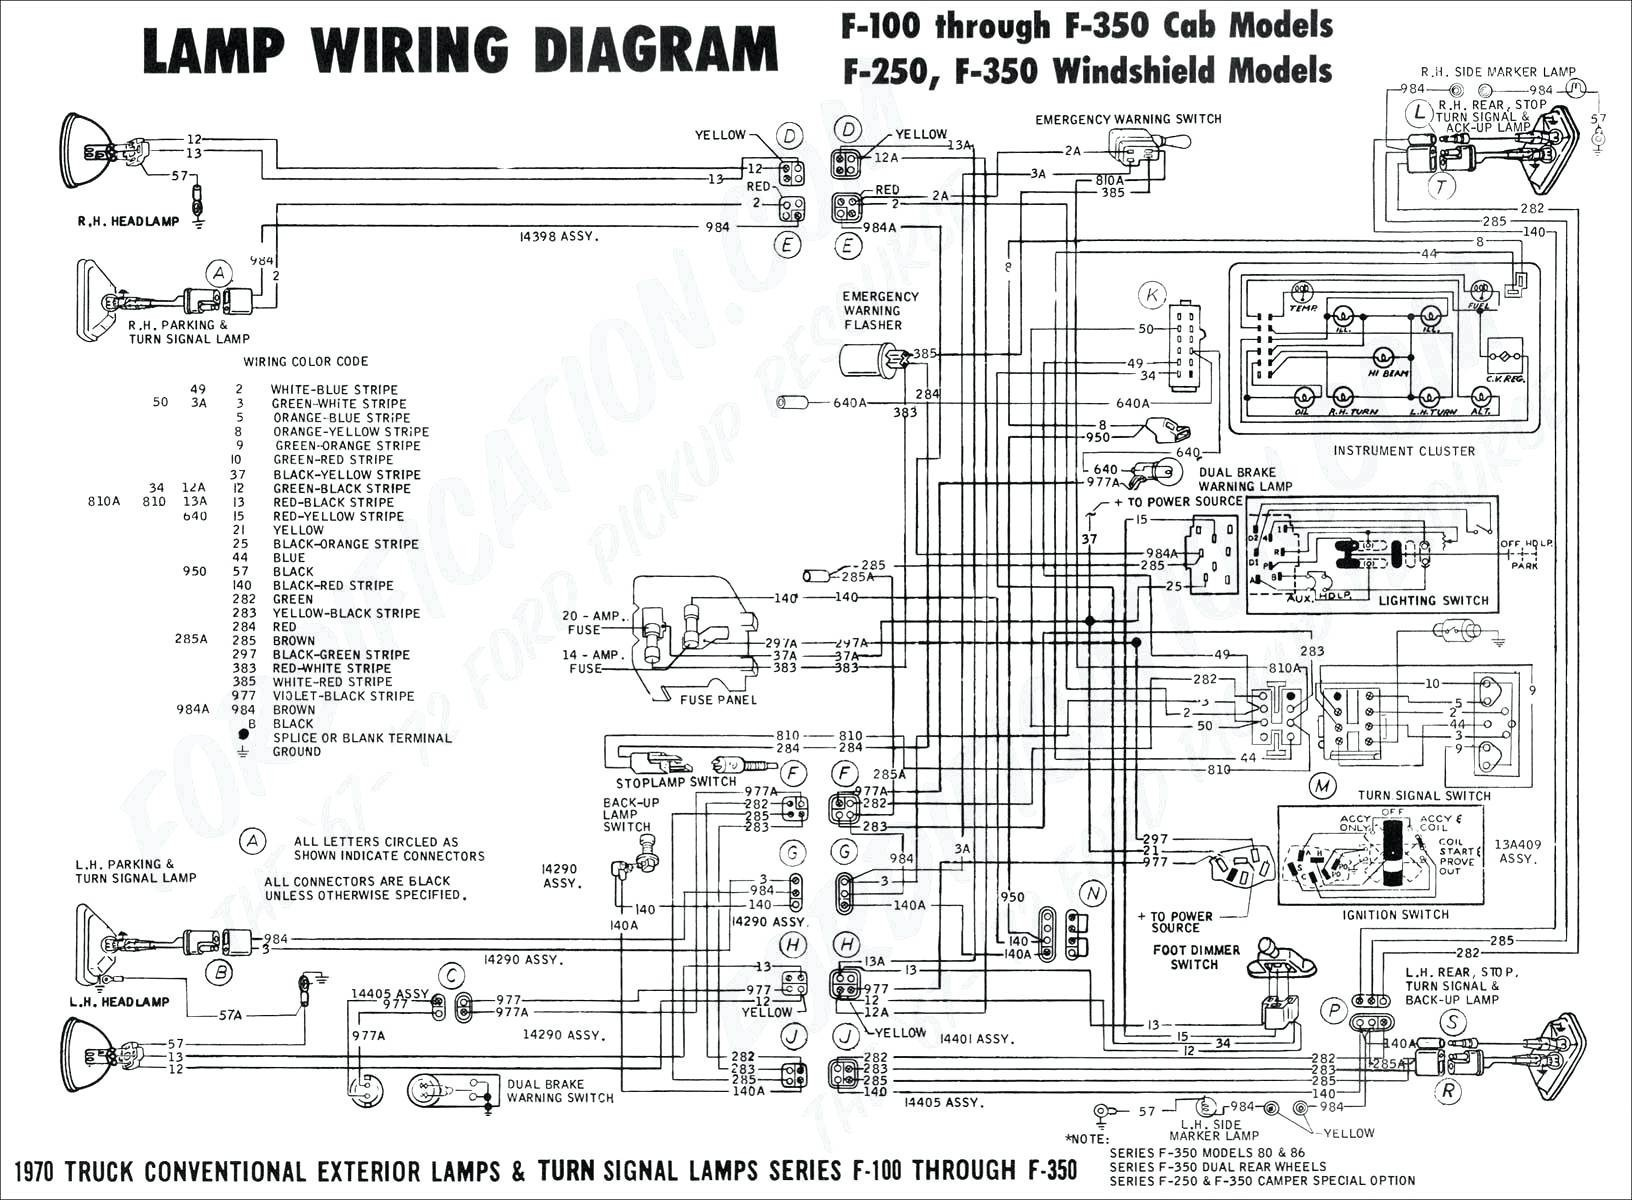 2001 Nissan Altima Engine Diagram 2000 Nissan Maxima Fuse Diagram Of 2001 Nissan Altima Engine Diagram